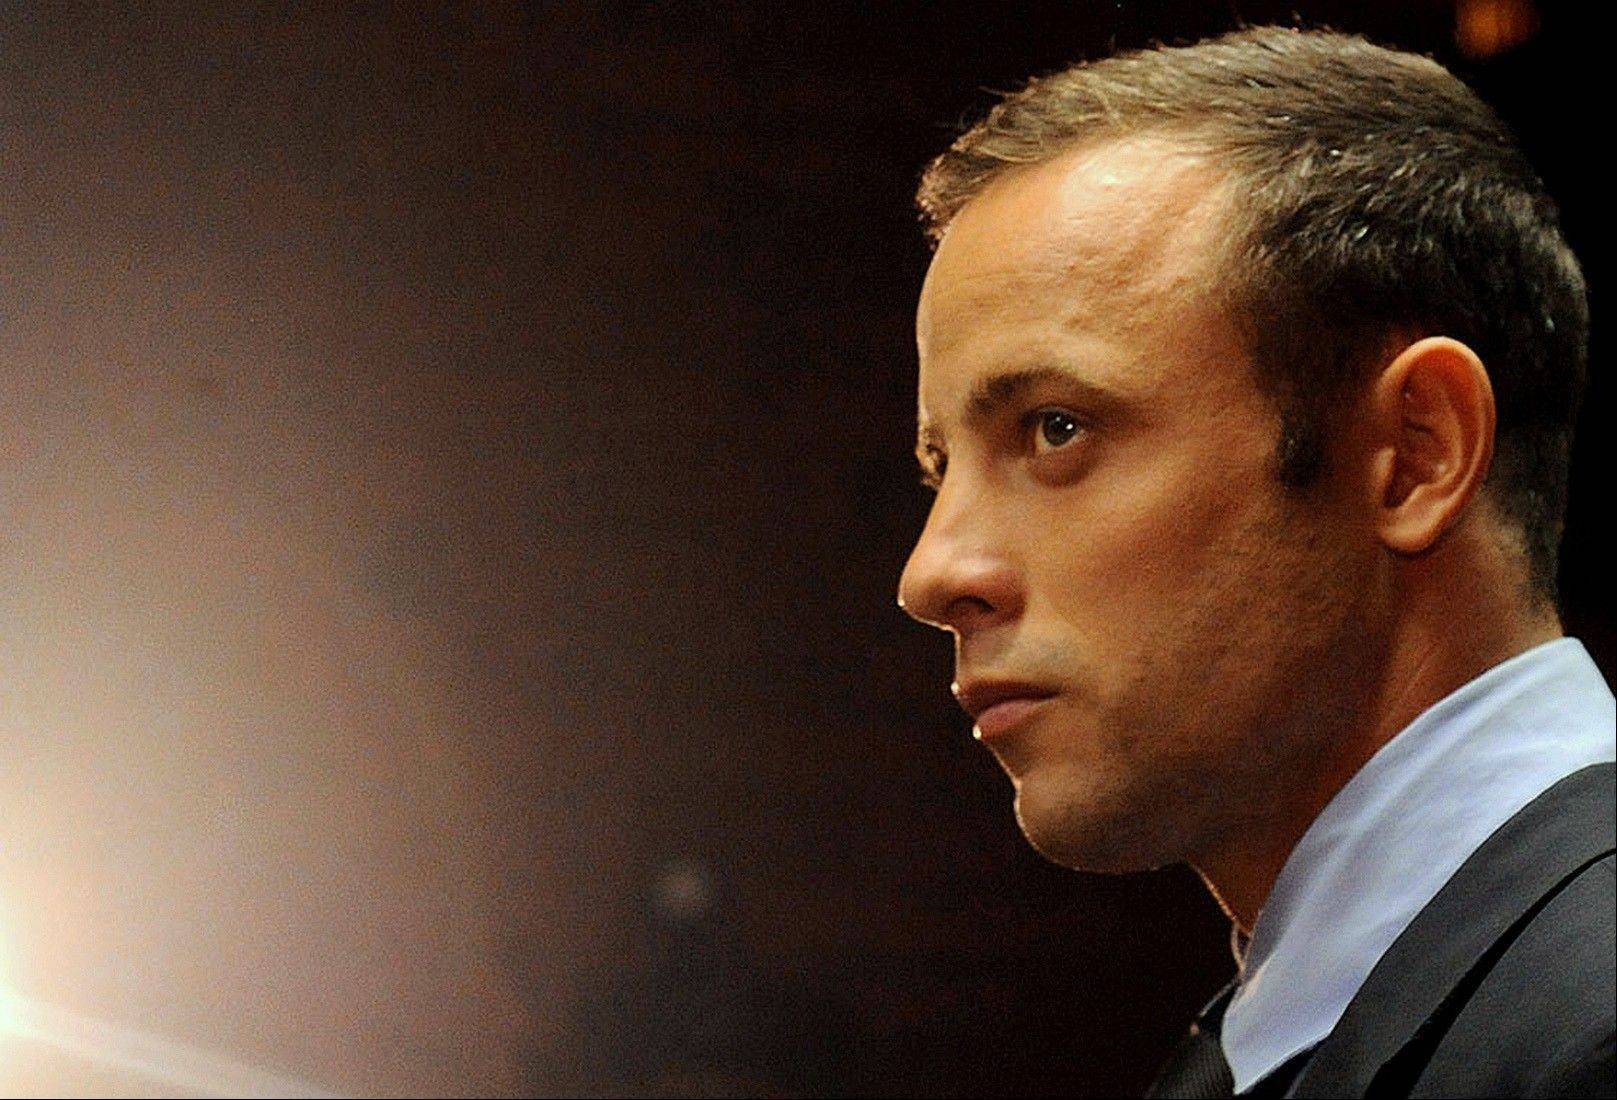 In this photo taken Friday, Feb. 26, 2013 file photo, Olympic athlete, Oscar Pistorius appears in court for his bail hearing after being charged with the shooting of his girlfriend, Reeva Steenkamp, in Pretoria, South Africa.